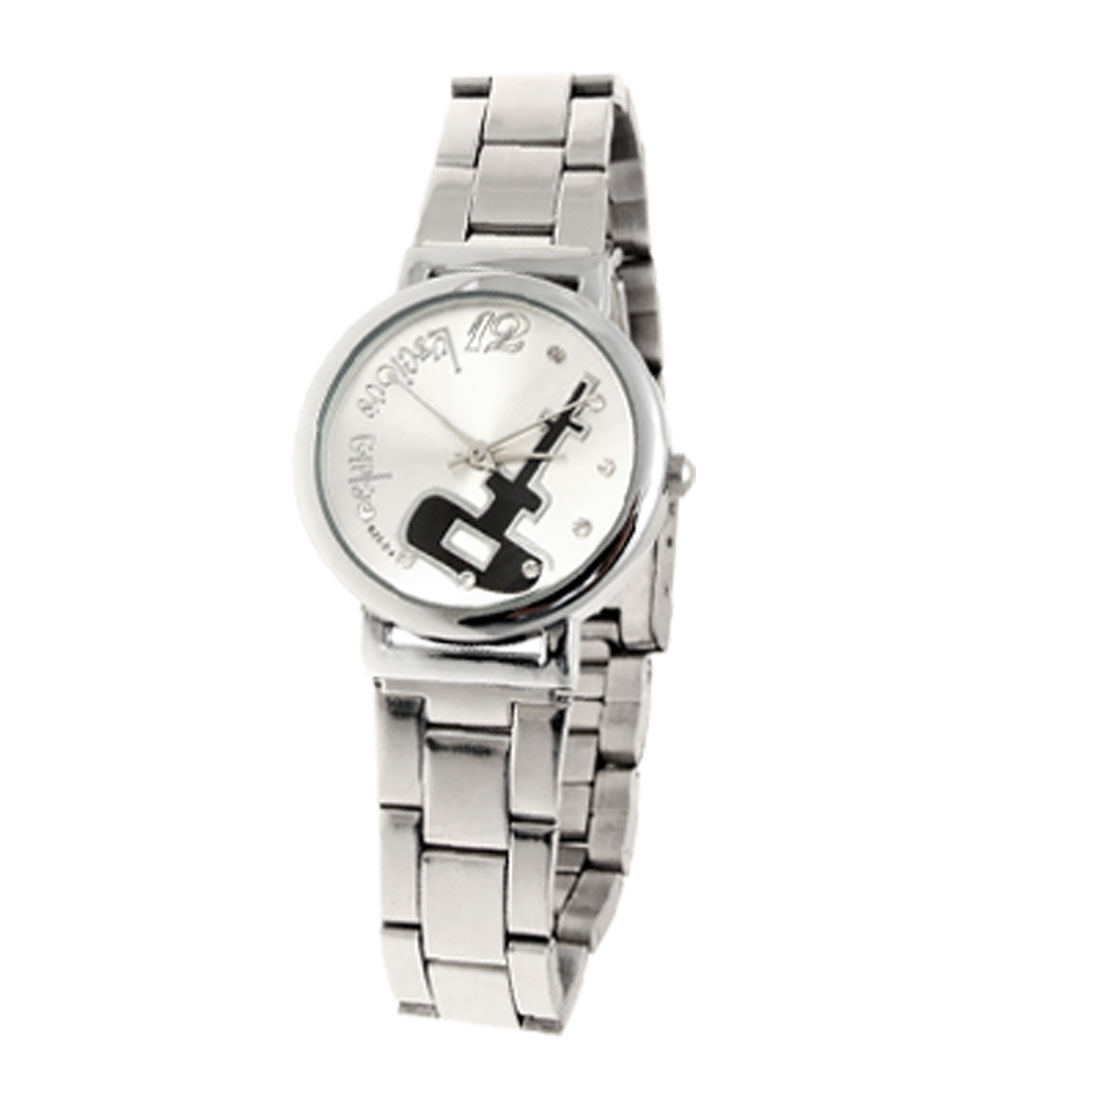 Fashion Jewelry Luxurious Silver Dial Round Metal Women Watches